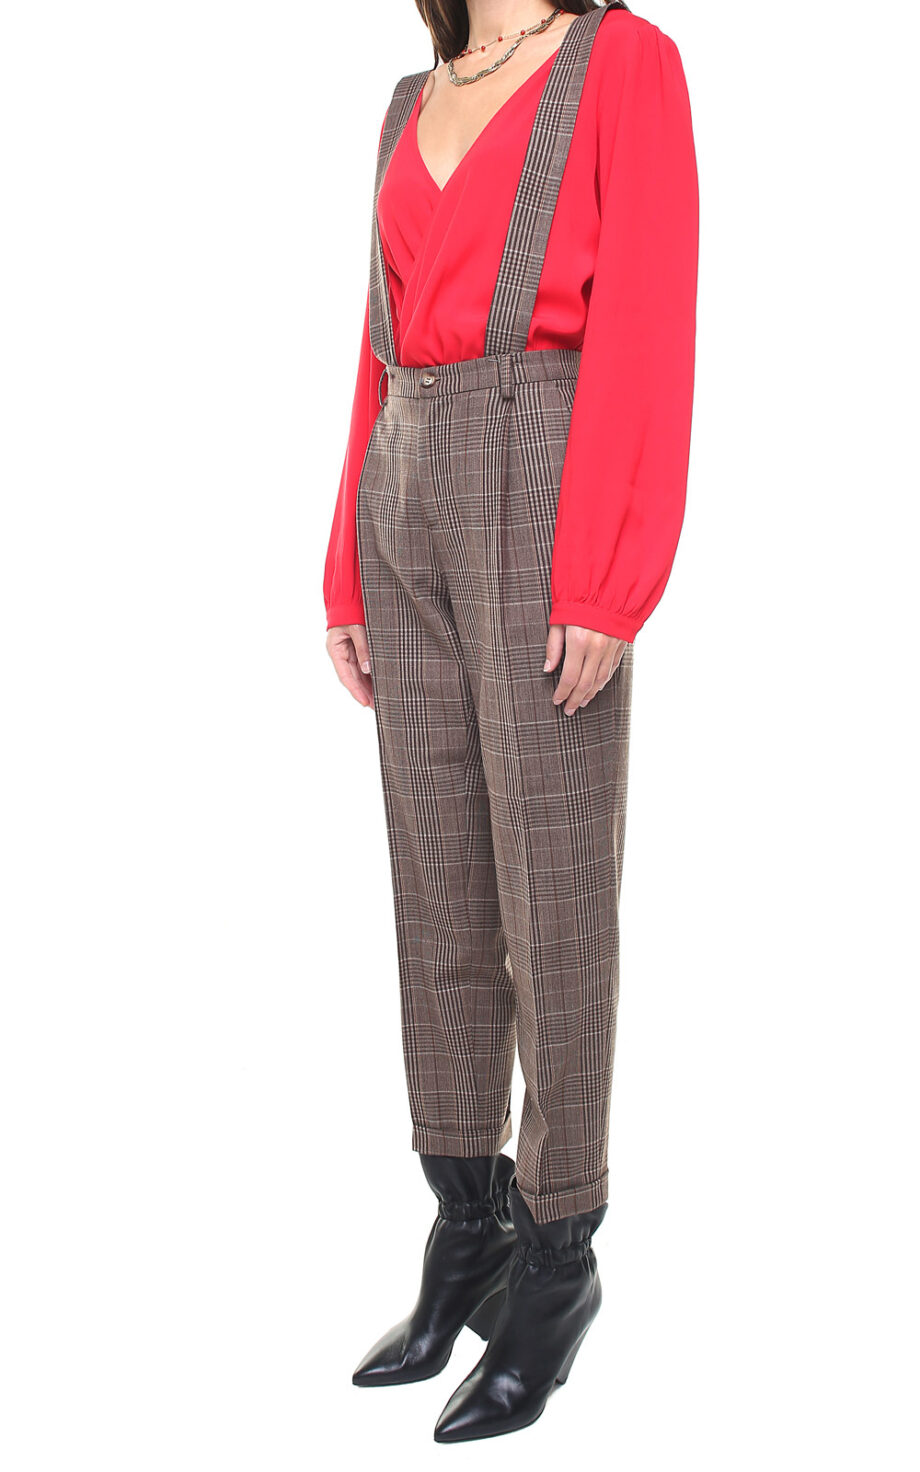 Jane trousers brown plaid w/ removable suspenders